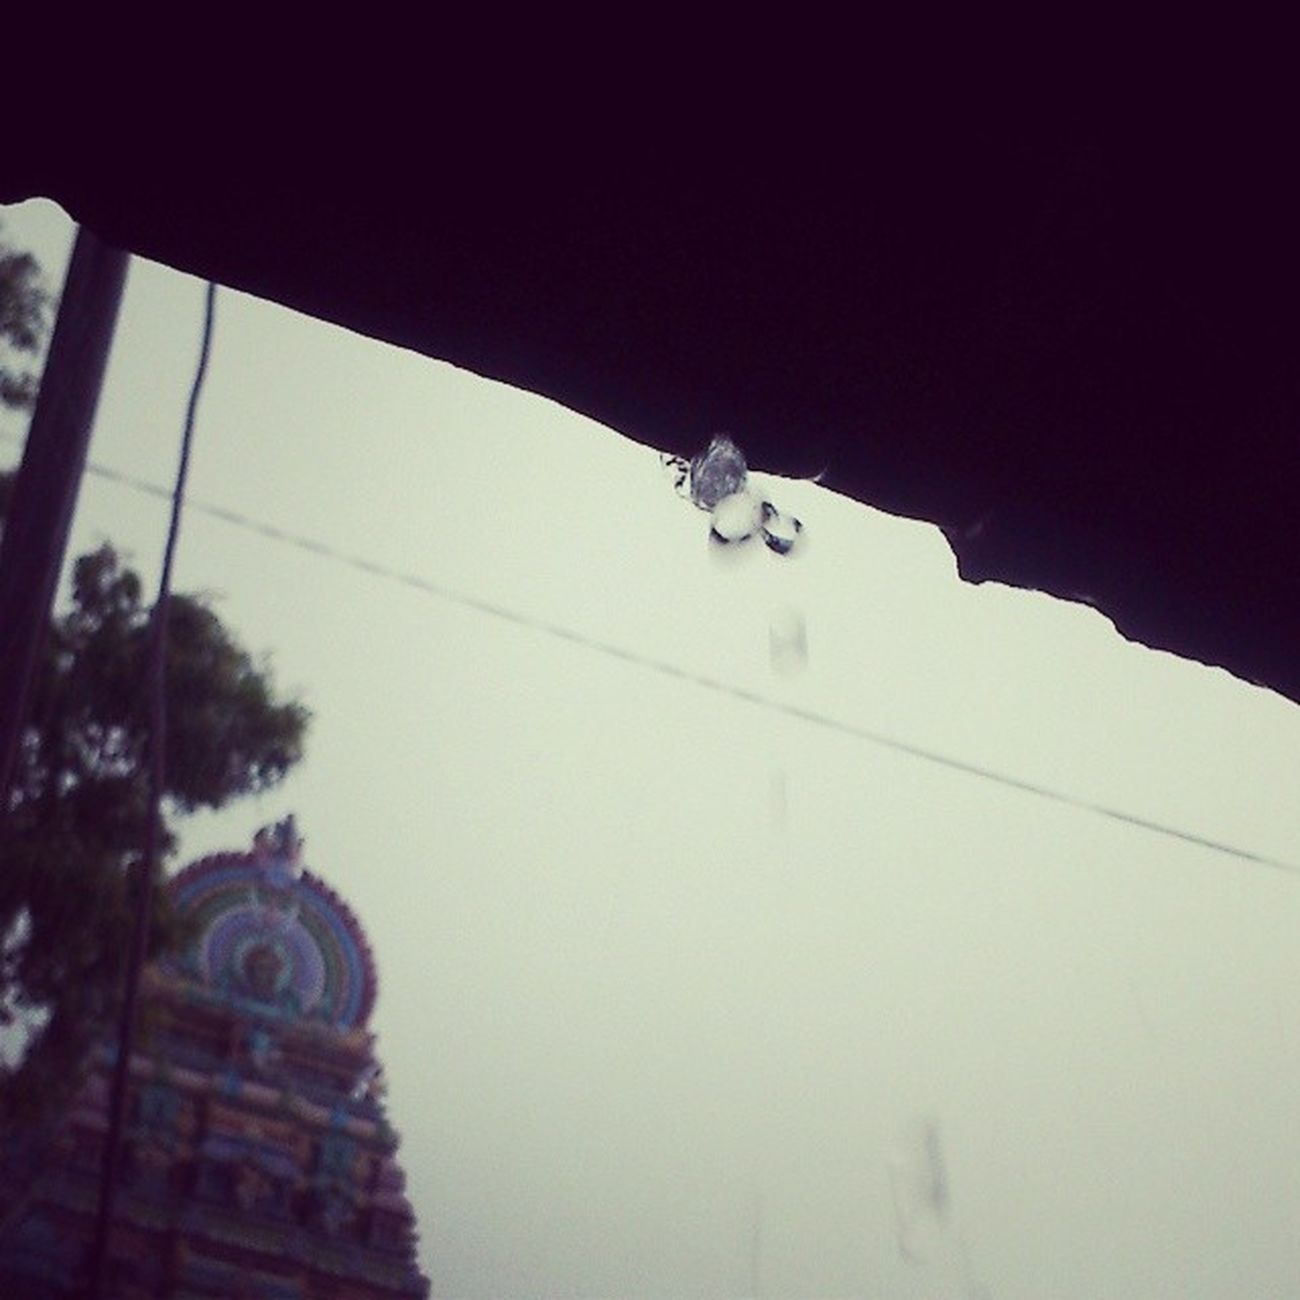 Raindrops Instasalem Tamilnadu feeling Awesome clicked in experia_mini